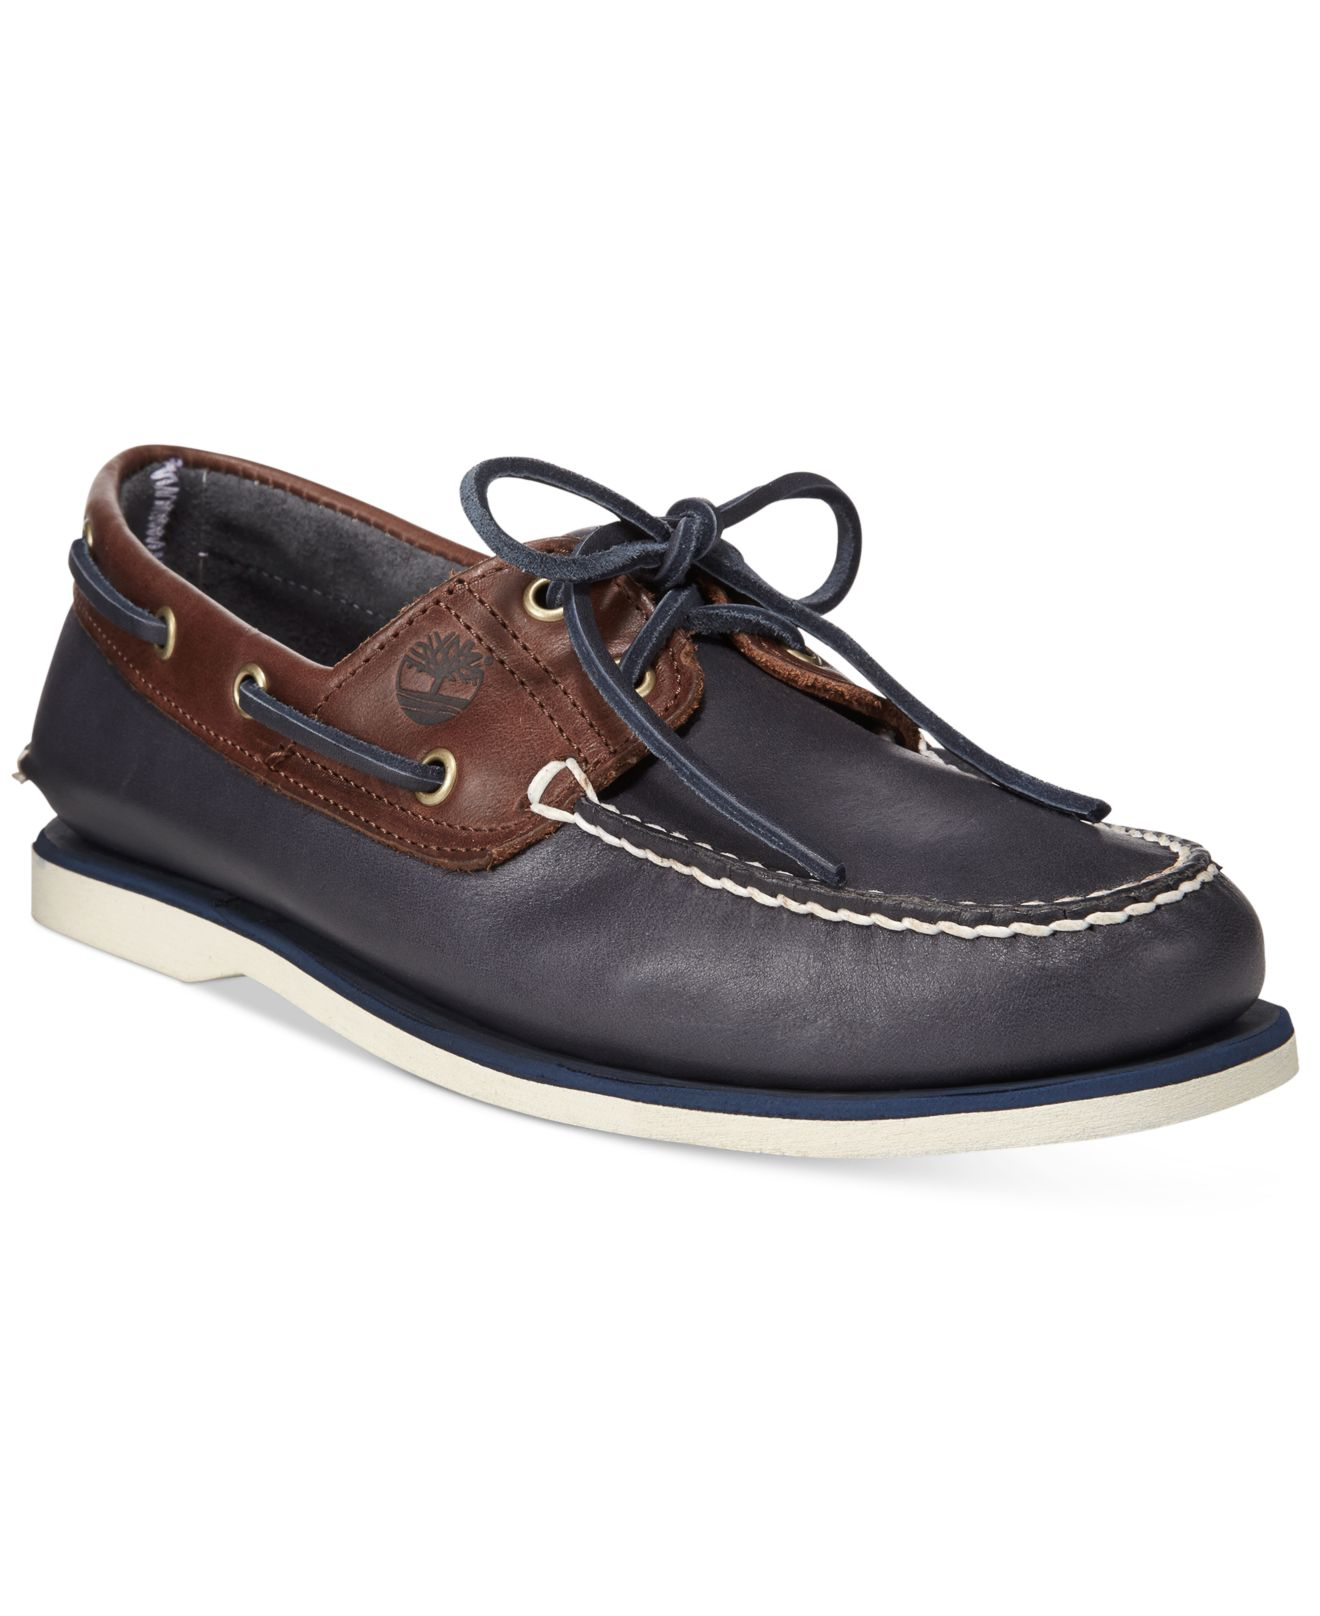 timberland classic 2-eyelet leather boat shoes navy